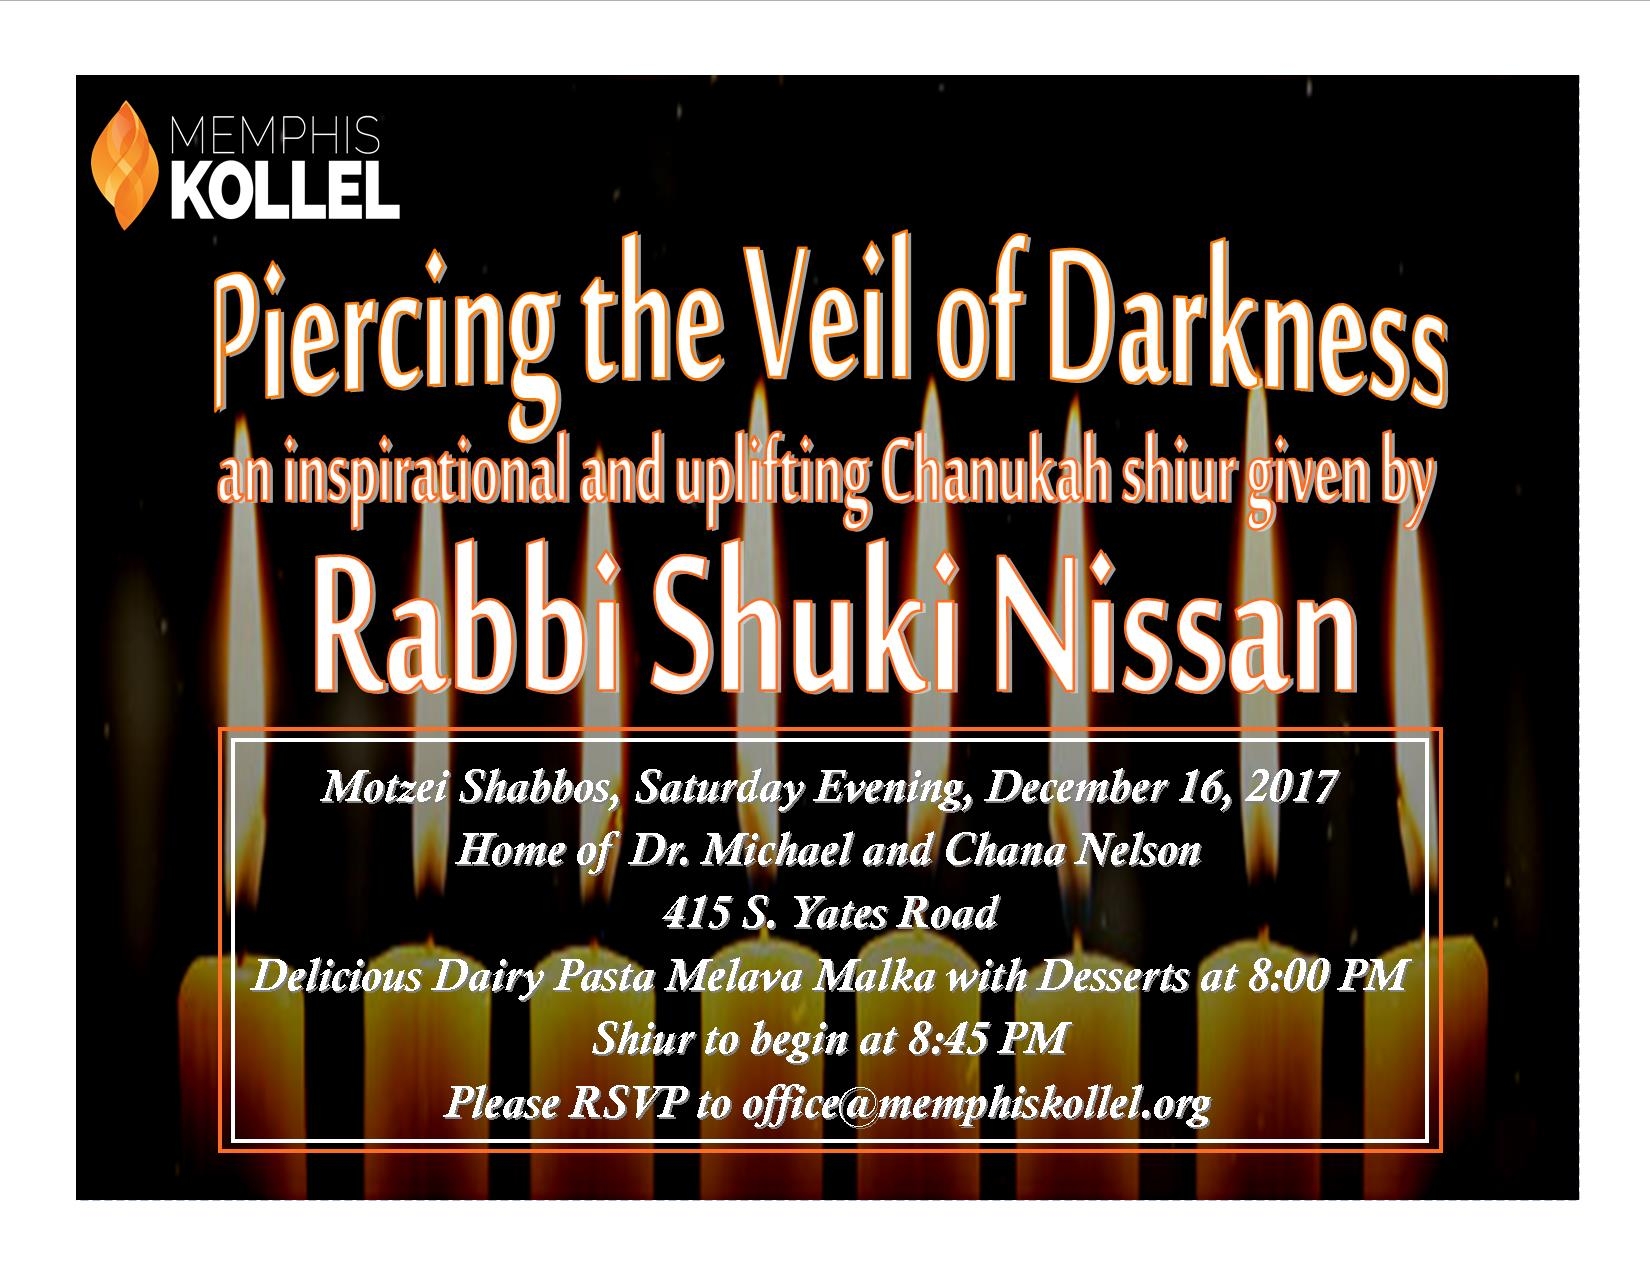 Chanukah Shiur and Melava Malka